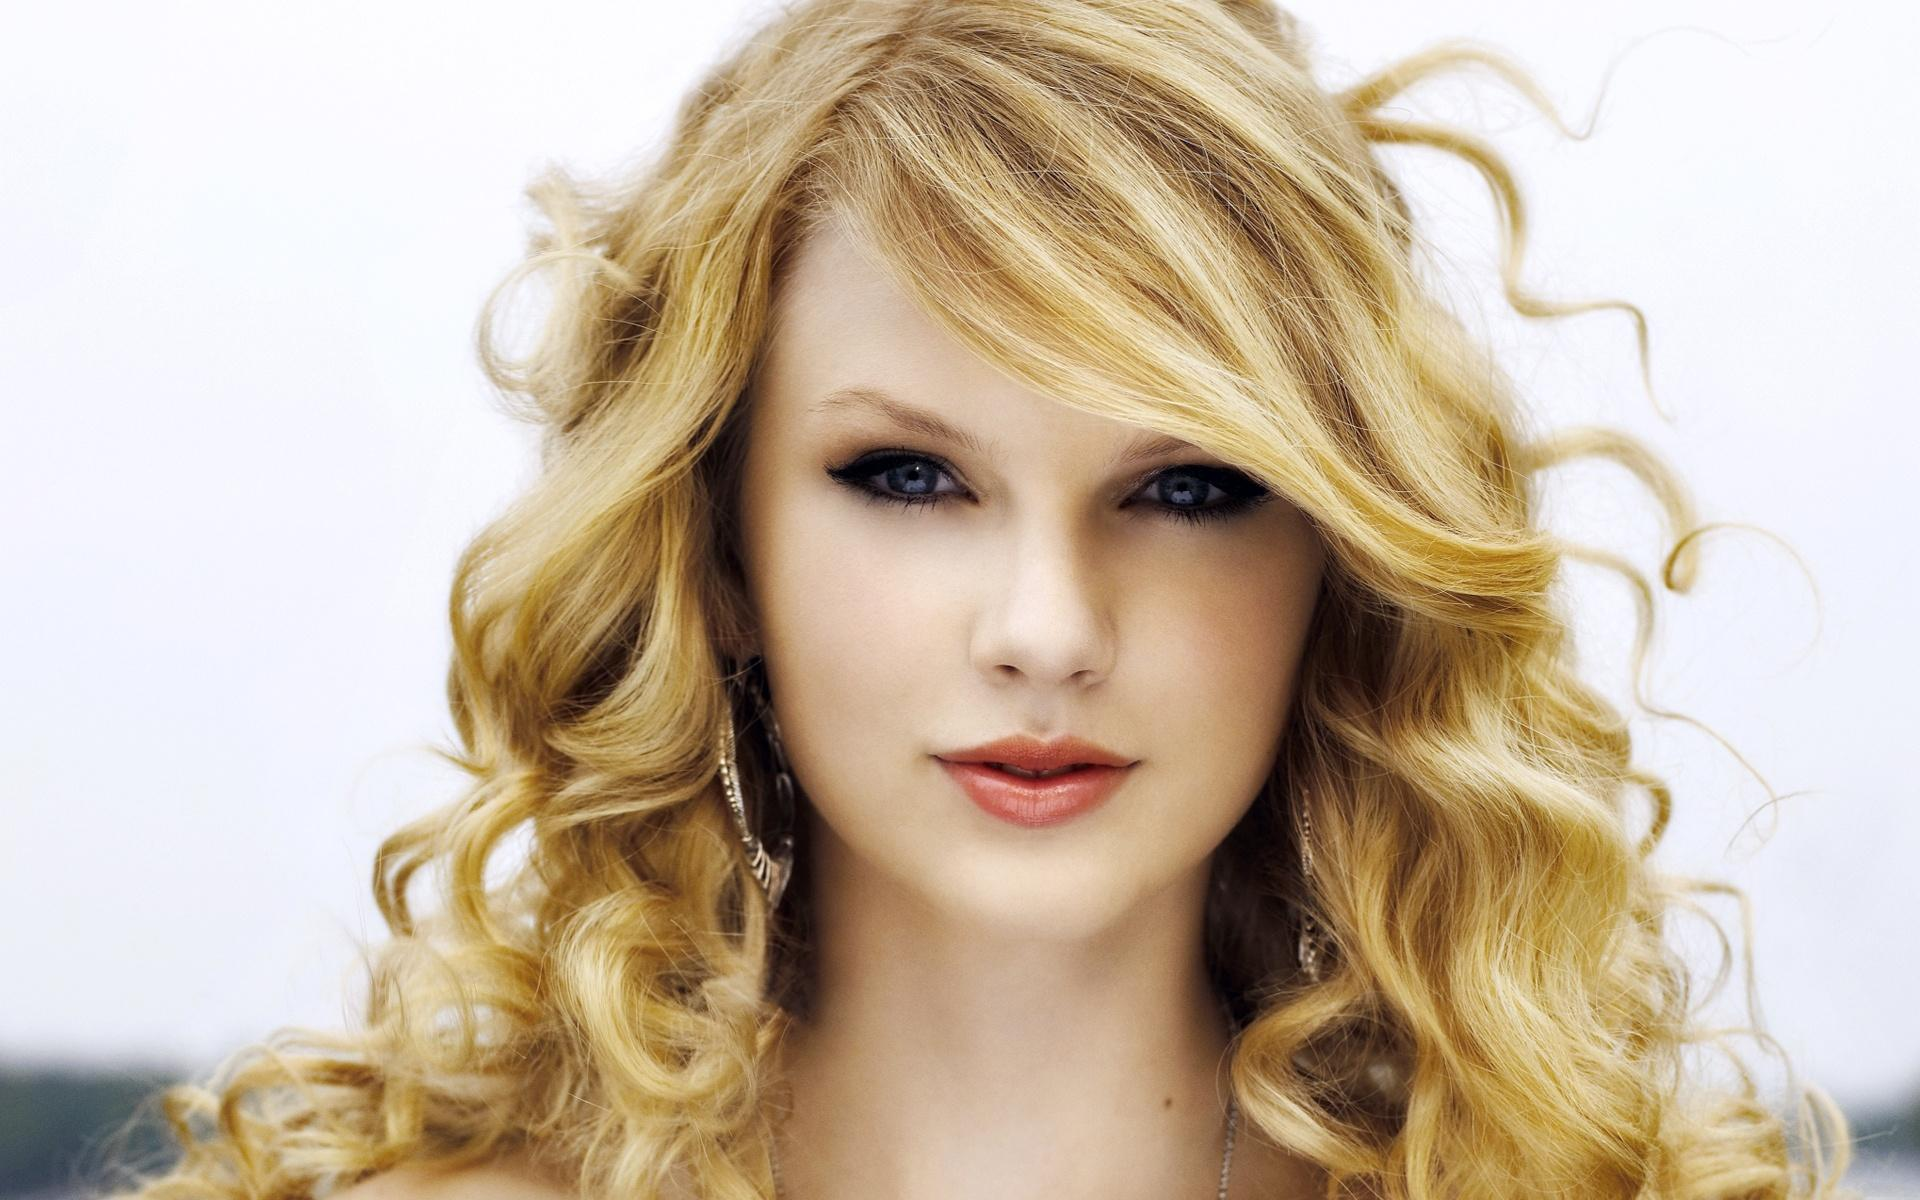 taylor swift cute - Taylor Swift Wallpaper (31852305) - Fanpop